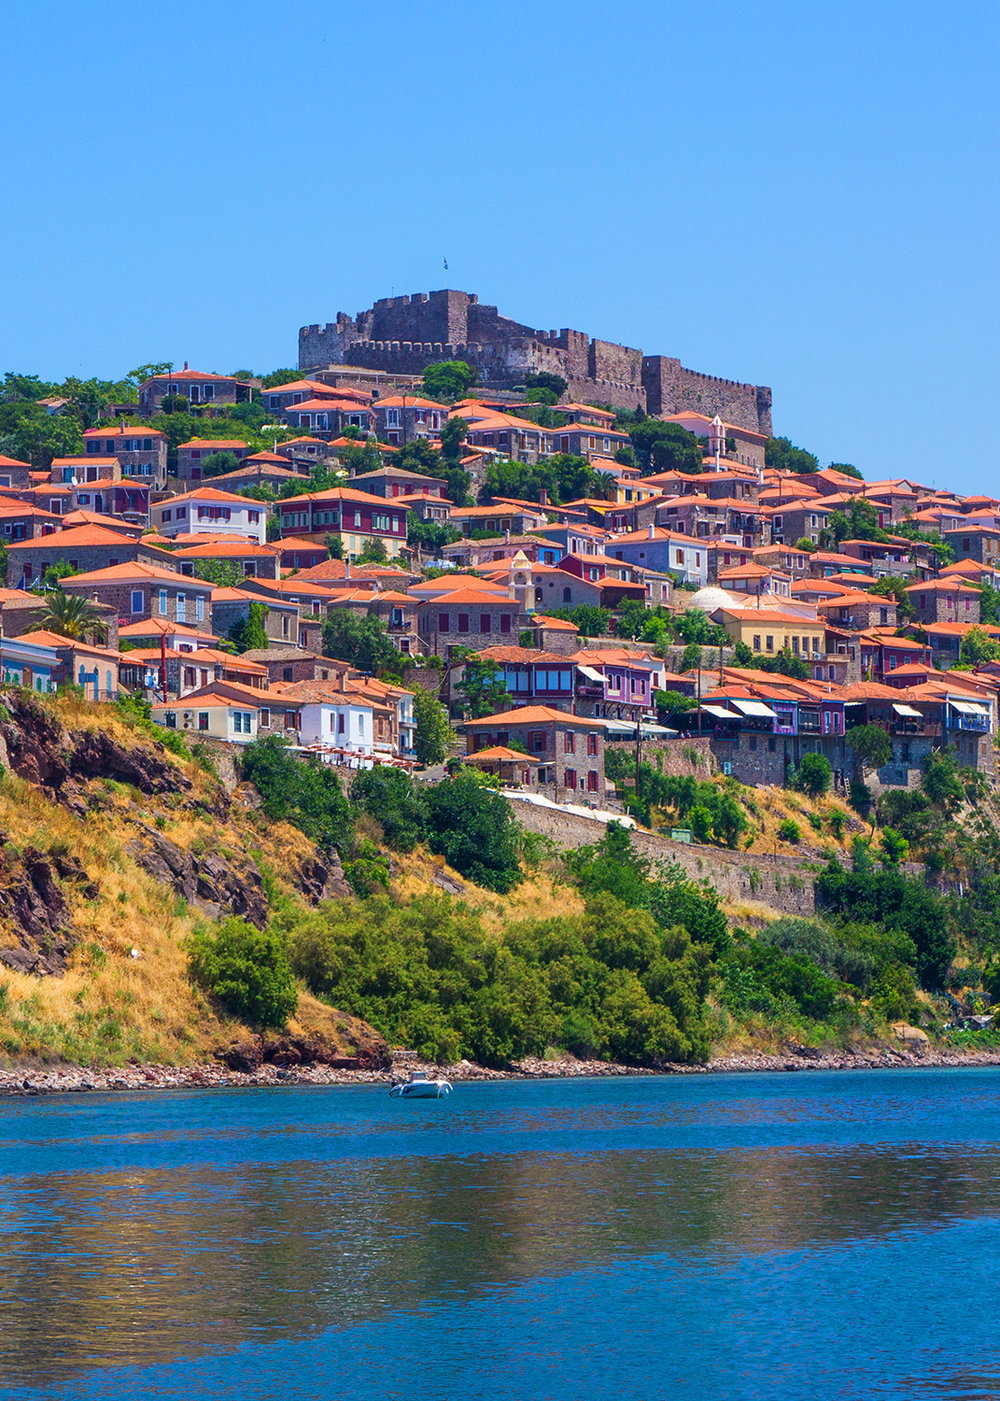 There are countless projects tohelp heal Lesvos -